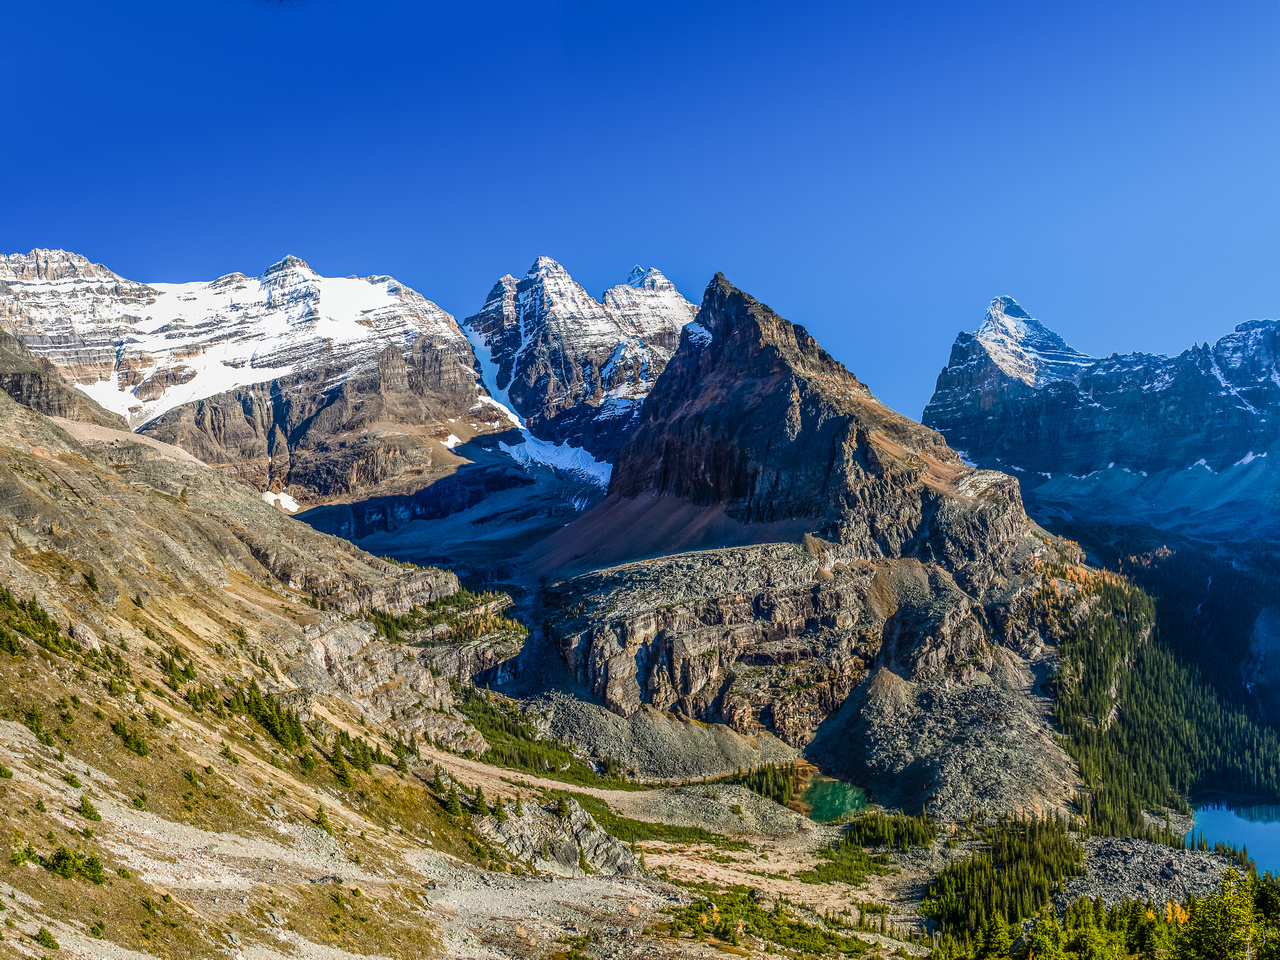 The trail down from the col to Lake O'Hara is obvious.